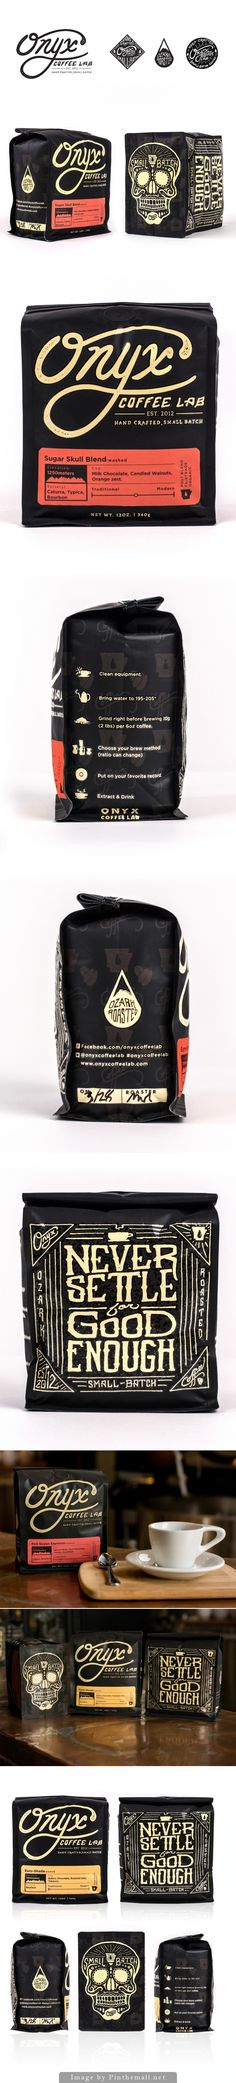 #packaging #branding #coffee